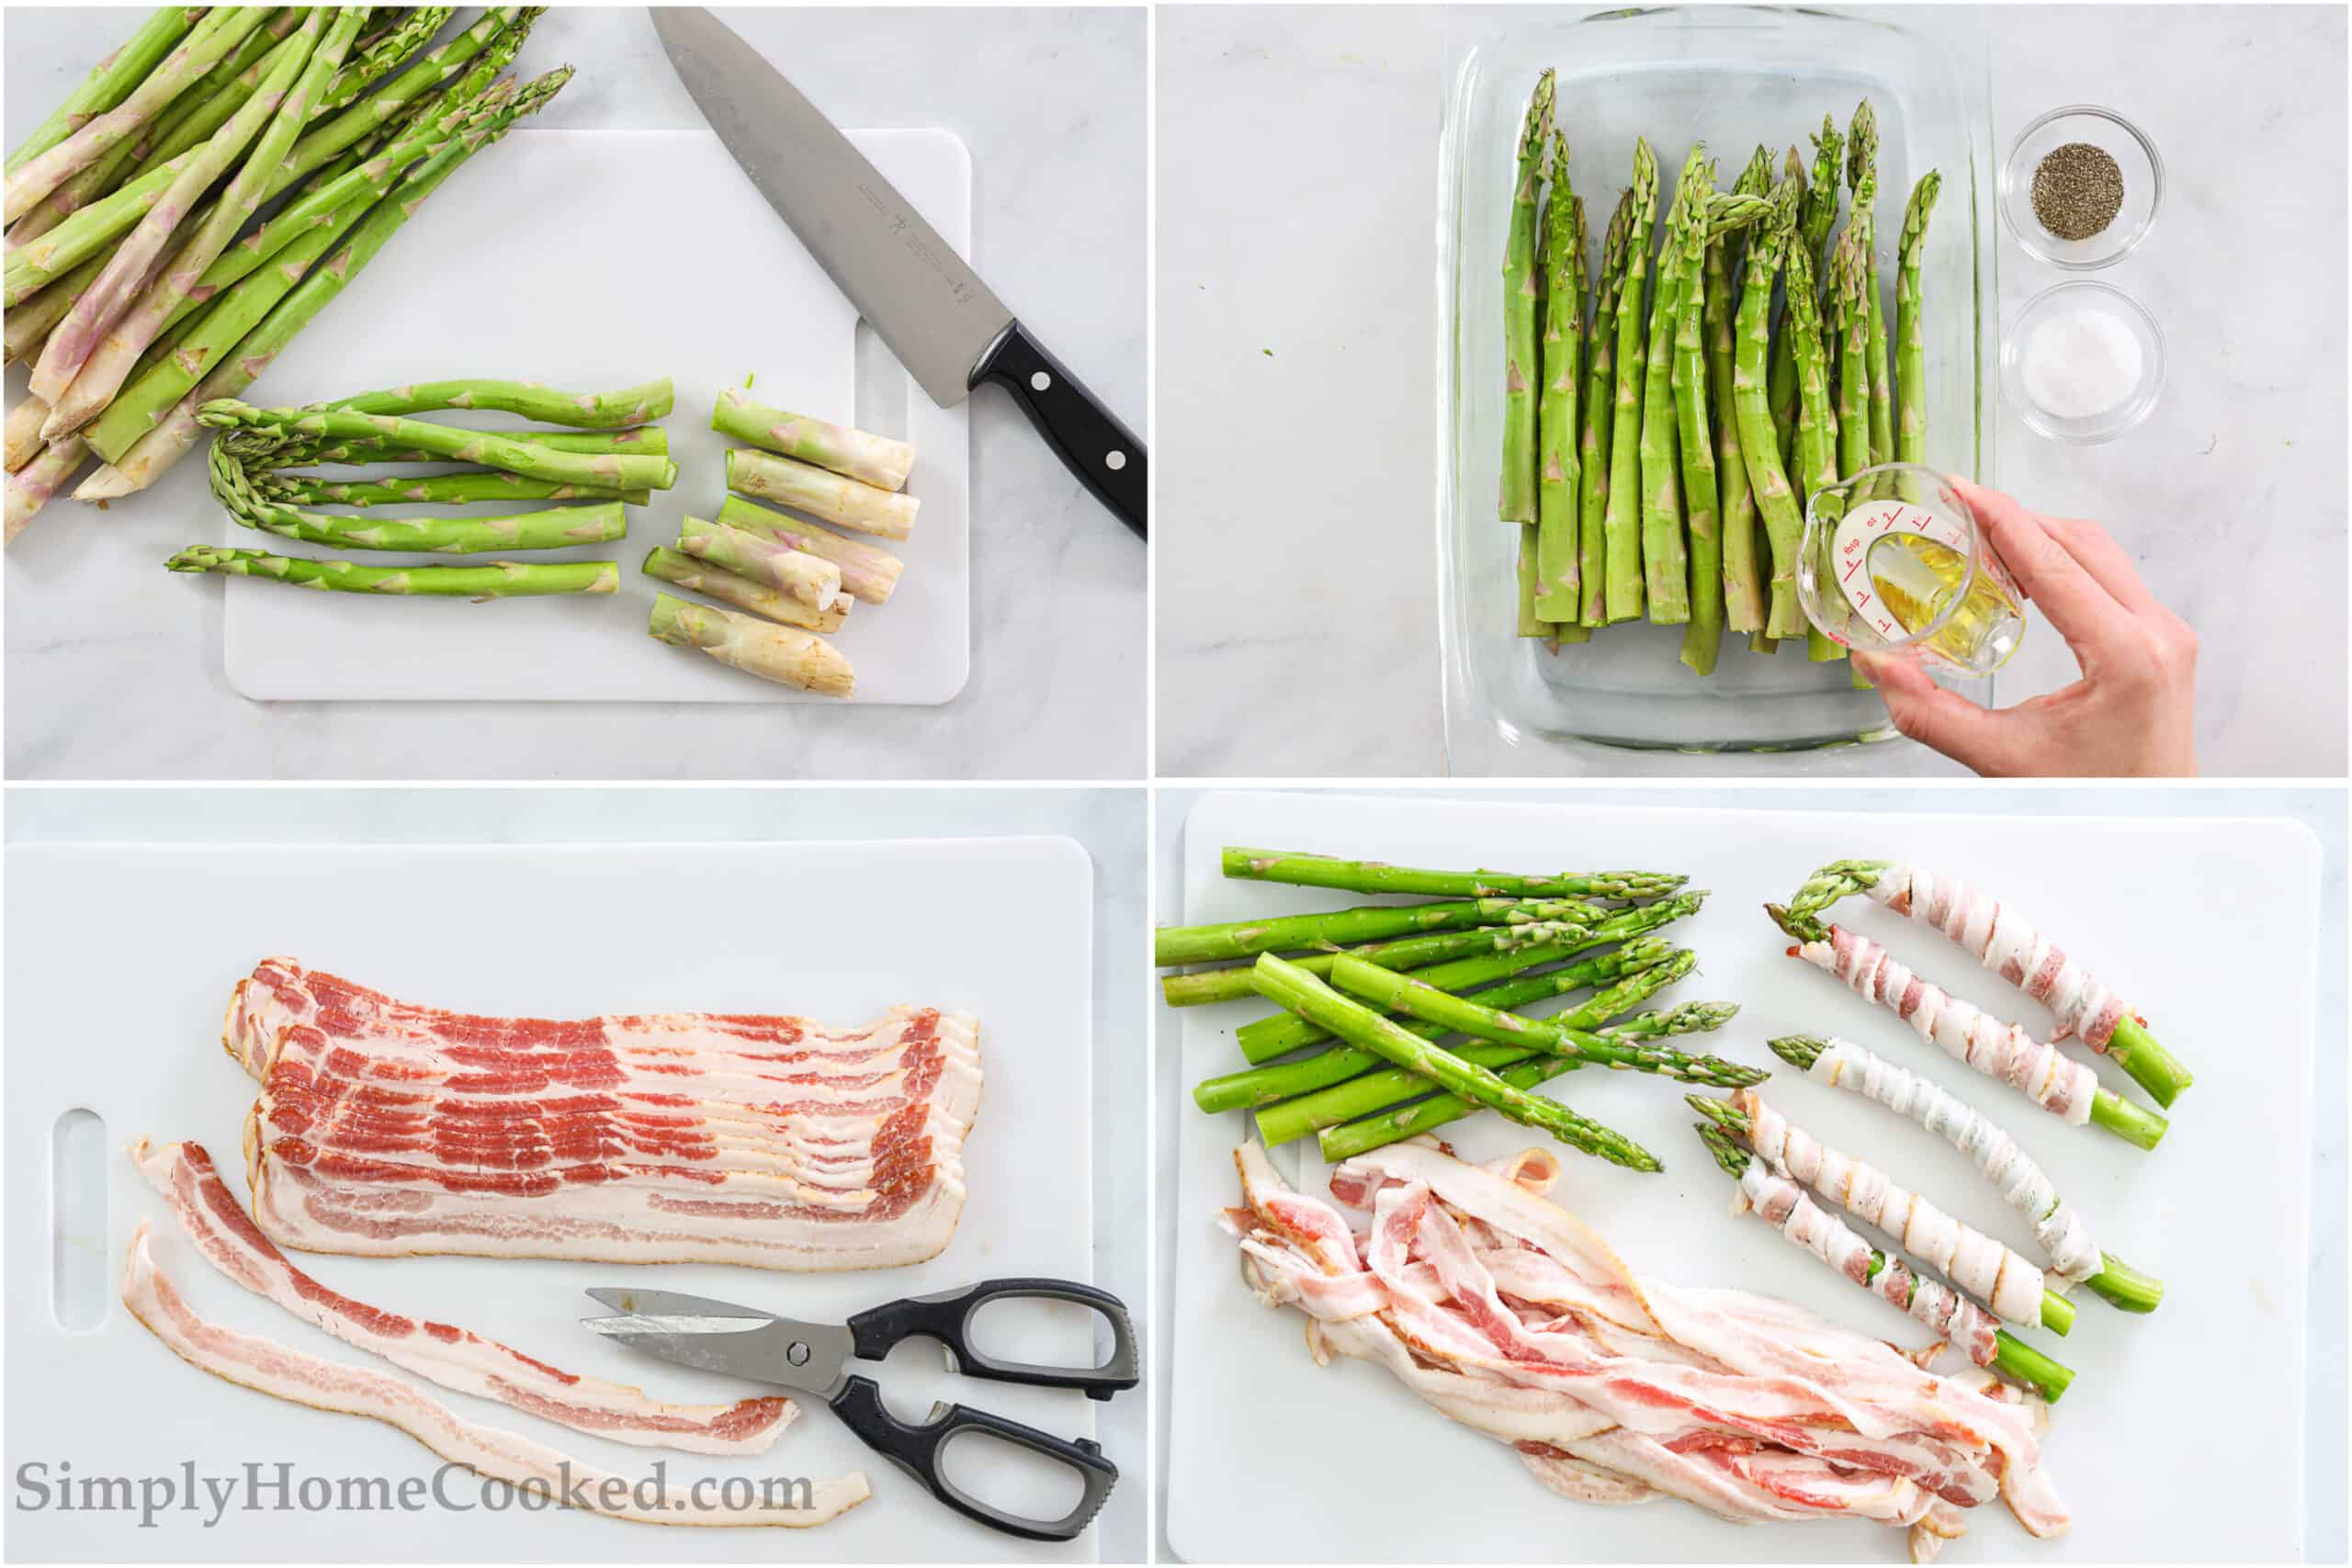 Steps to make Bacon Wrapped Asparagus, including trimming the spears, coating with oil, salt, and pepper, and then cutting the bacon lengthwise with kitchen shears before wrapping it around the asparagus tightly.